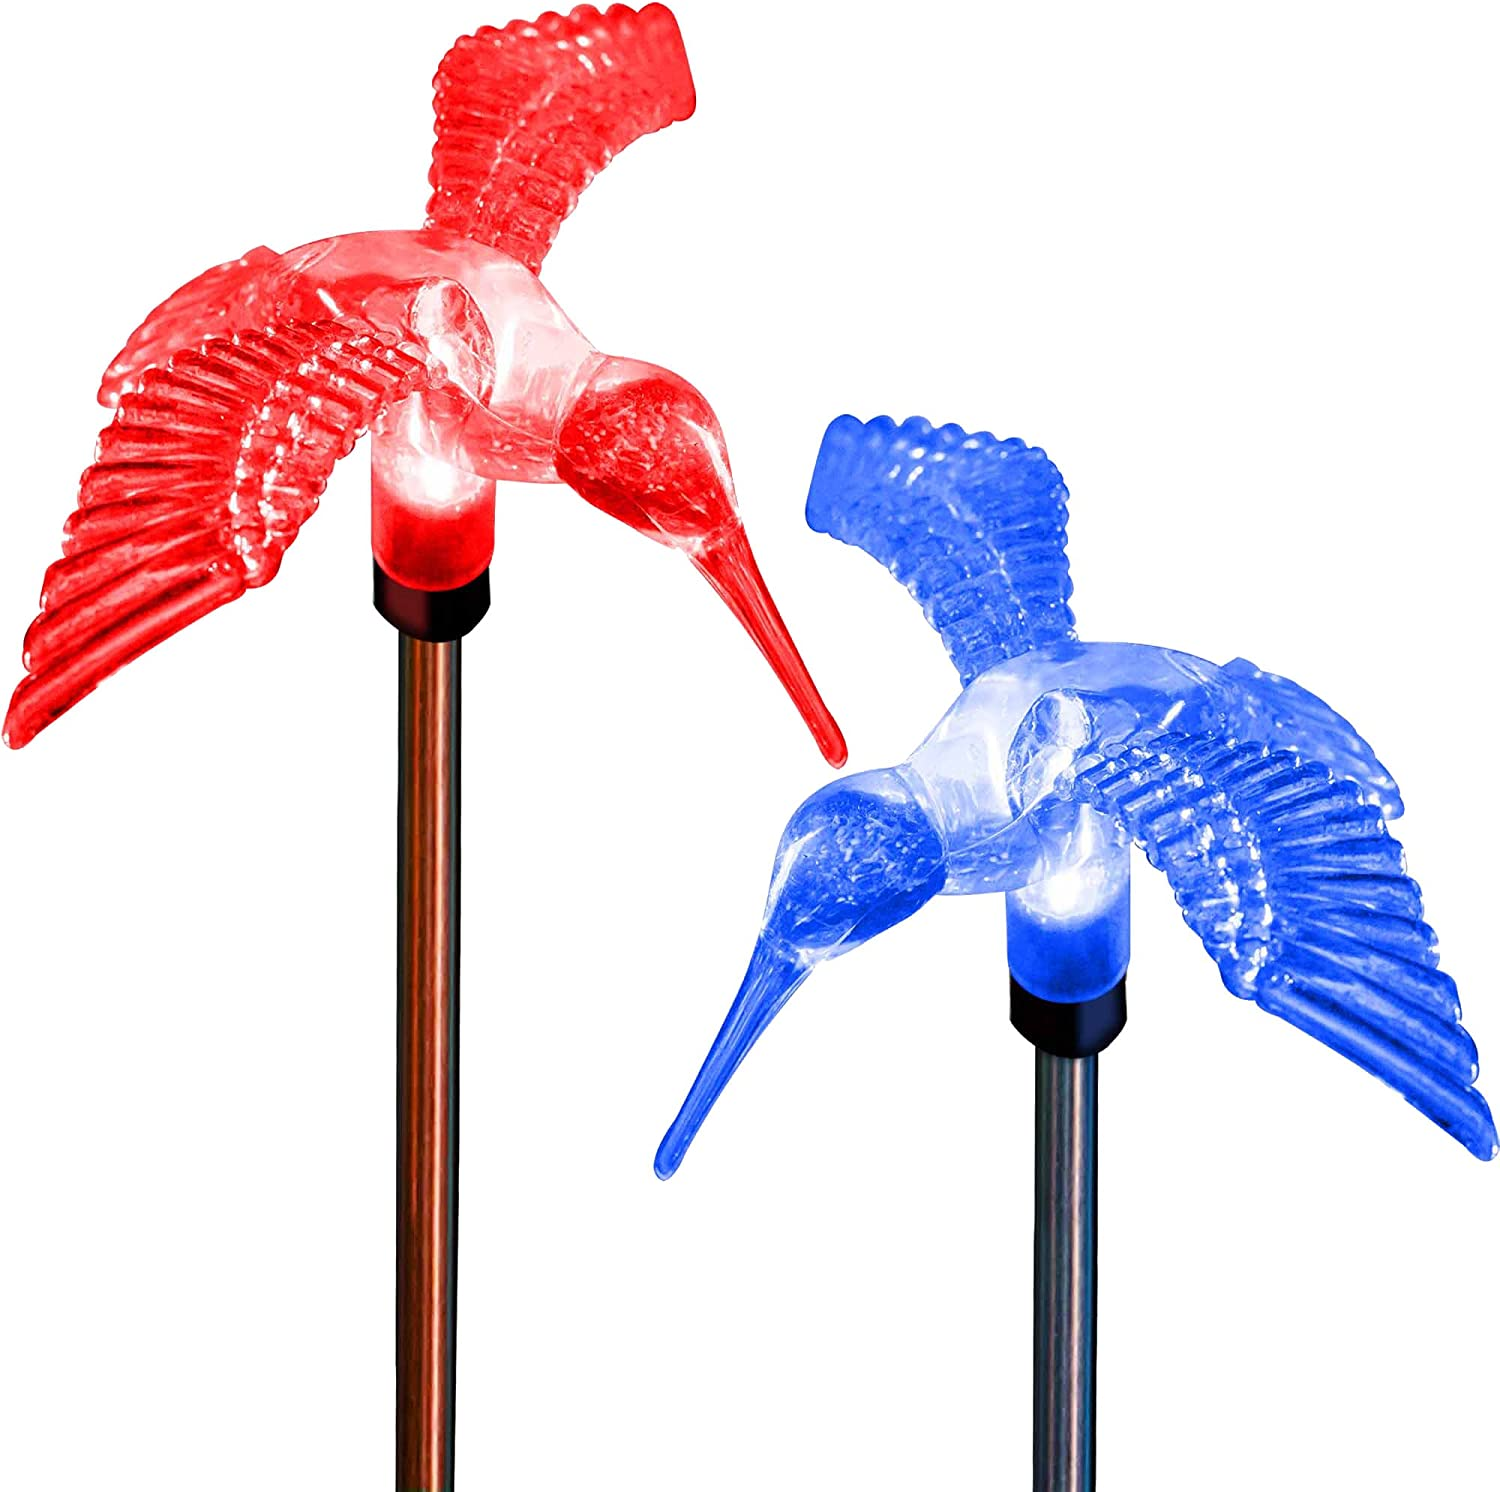 Hummingbird Decor LED Solar Powered Acrylic Lights Color Changing Outdoor Decorations Ornament 3D Garden Gifts Yard Stakes Charm Figurines Statue Decorative Lamp (Set of 2)